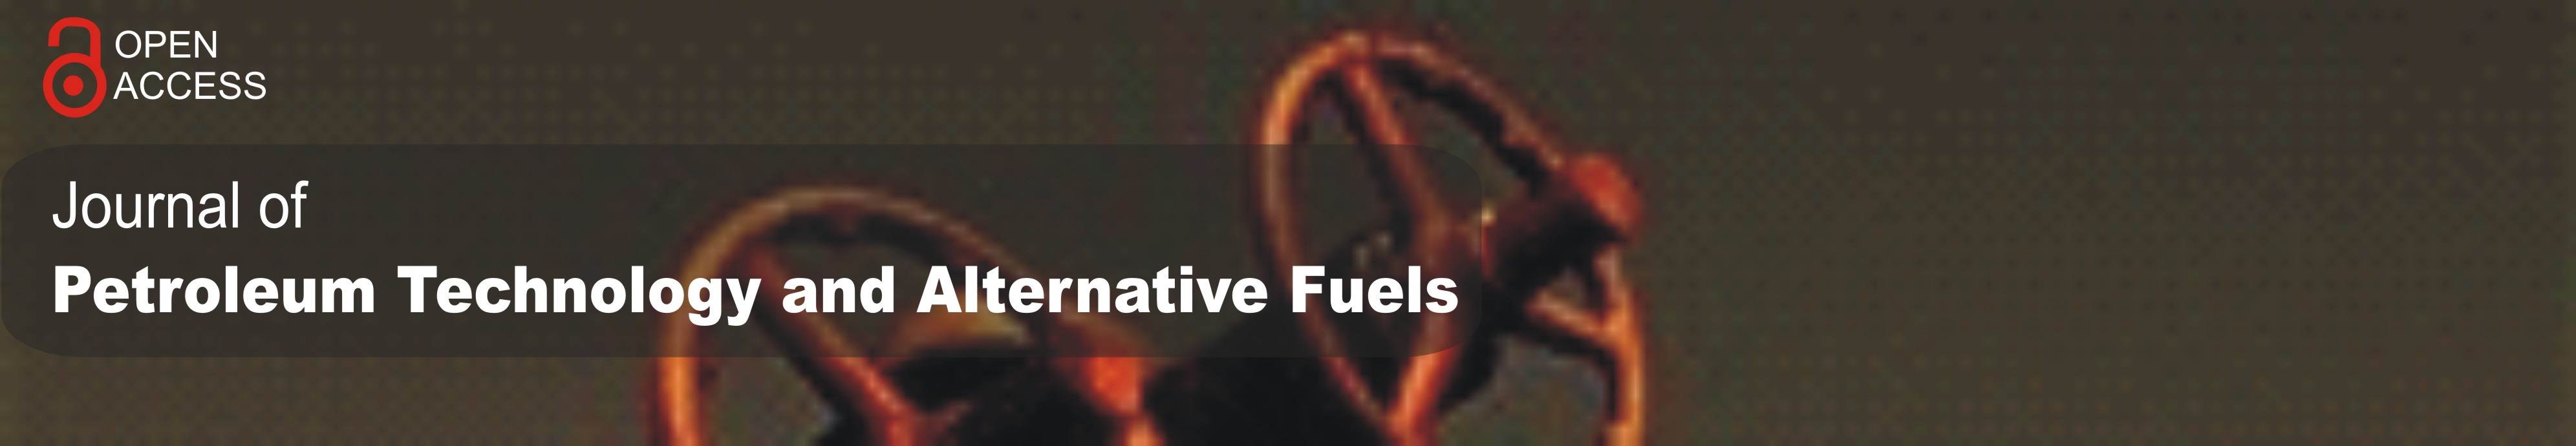 Journal of Petroleum Technology and Alternative Fuels